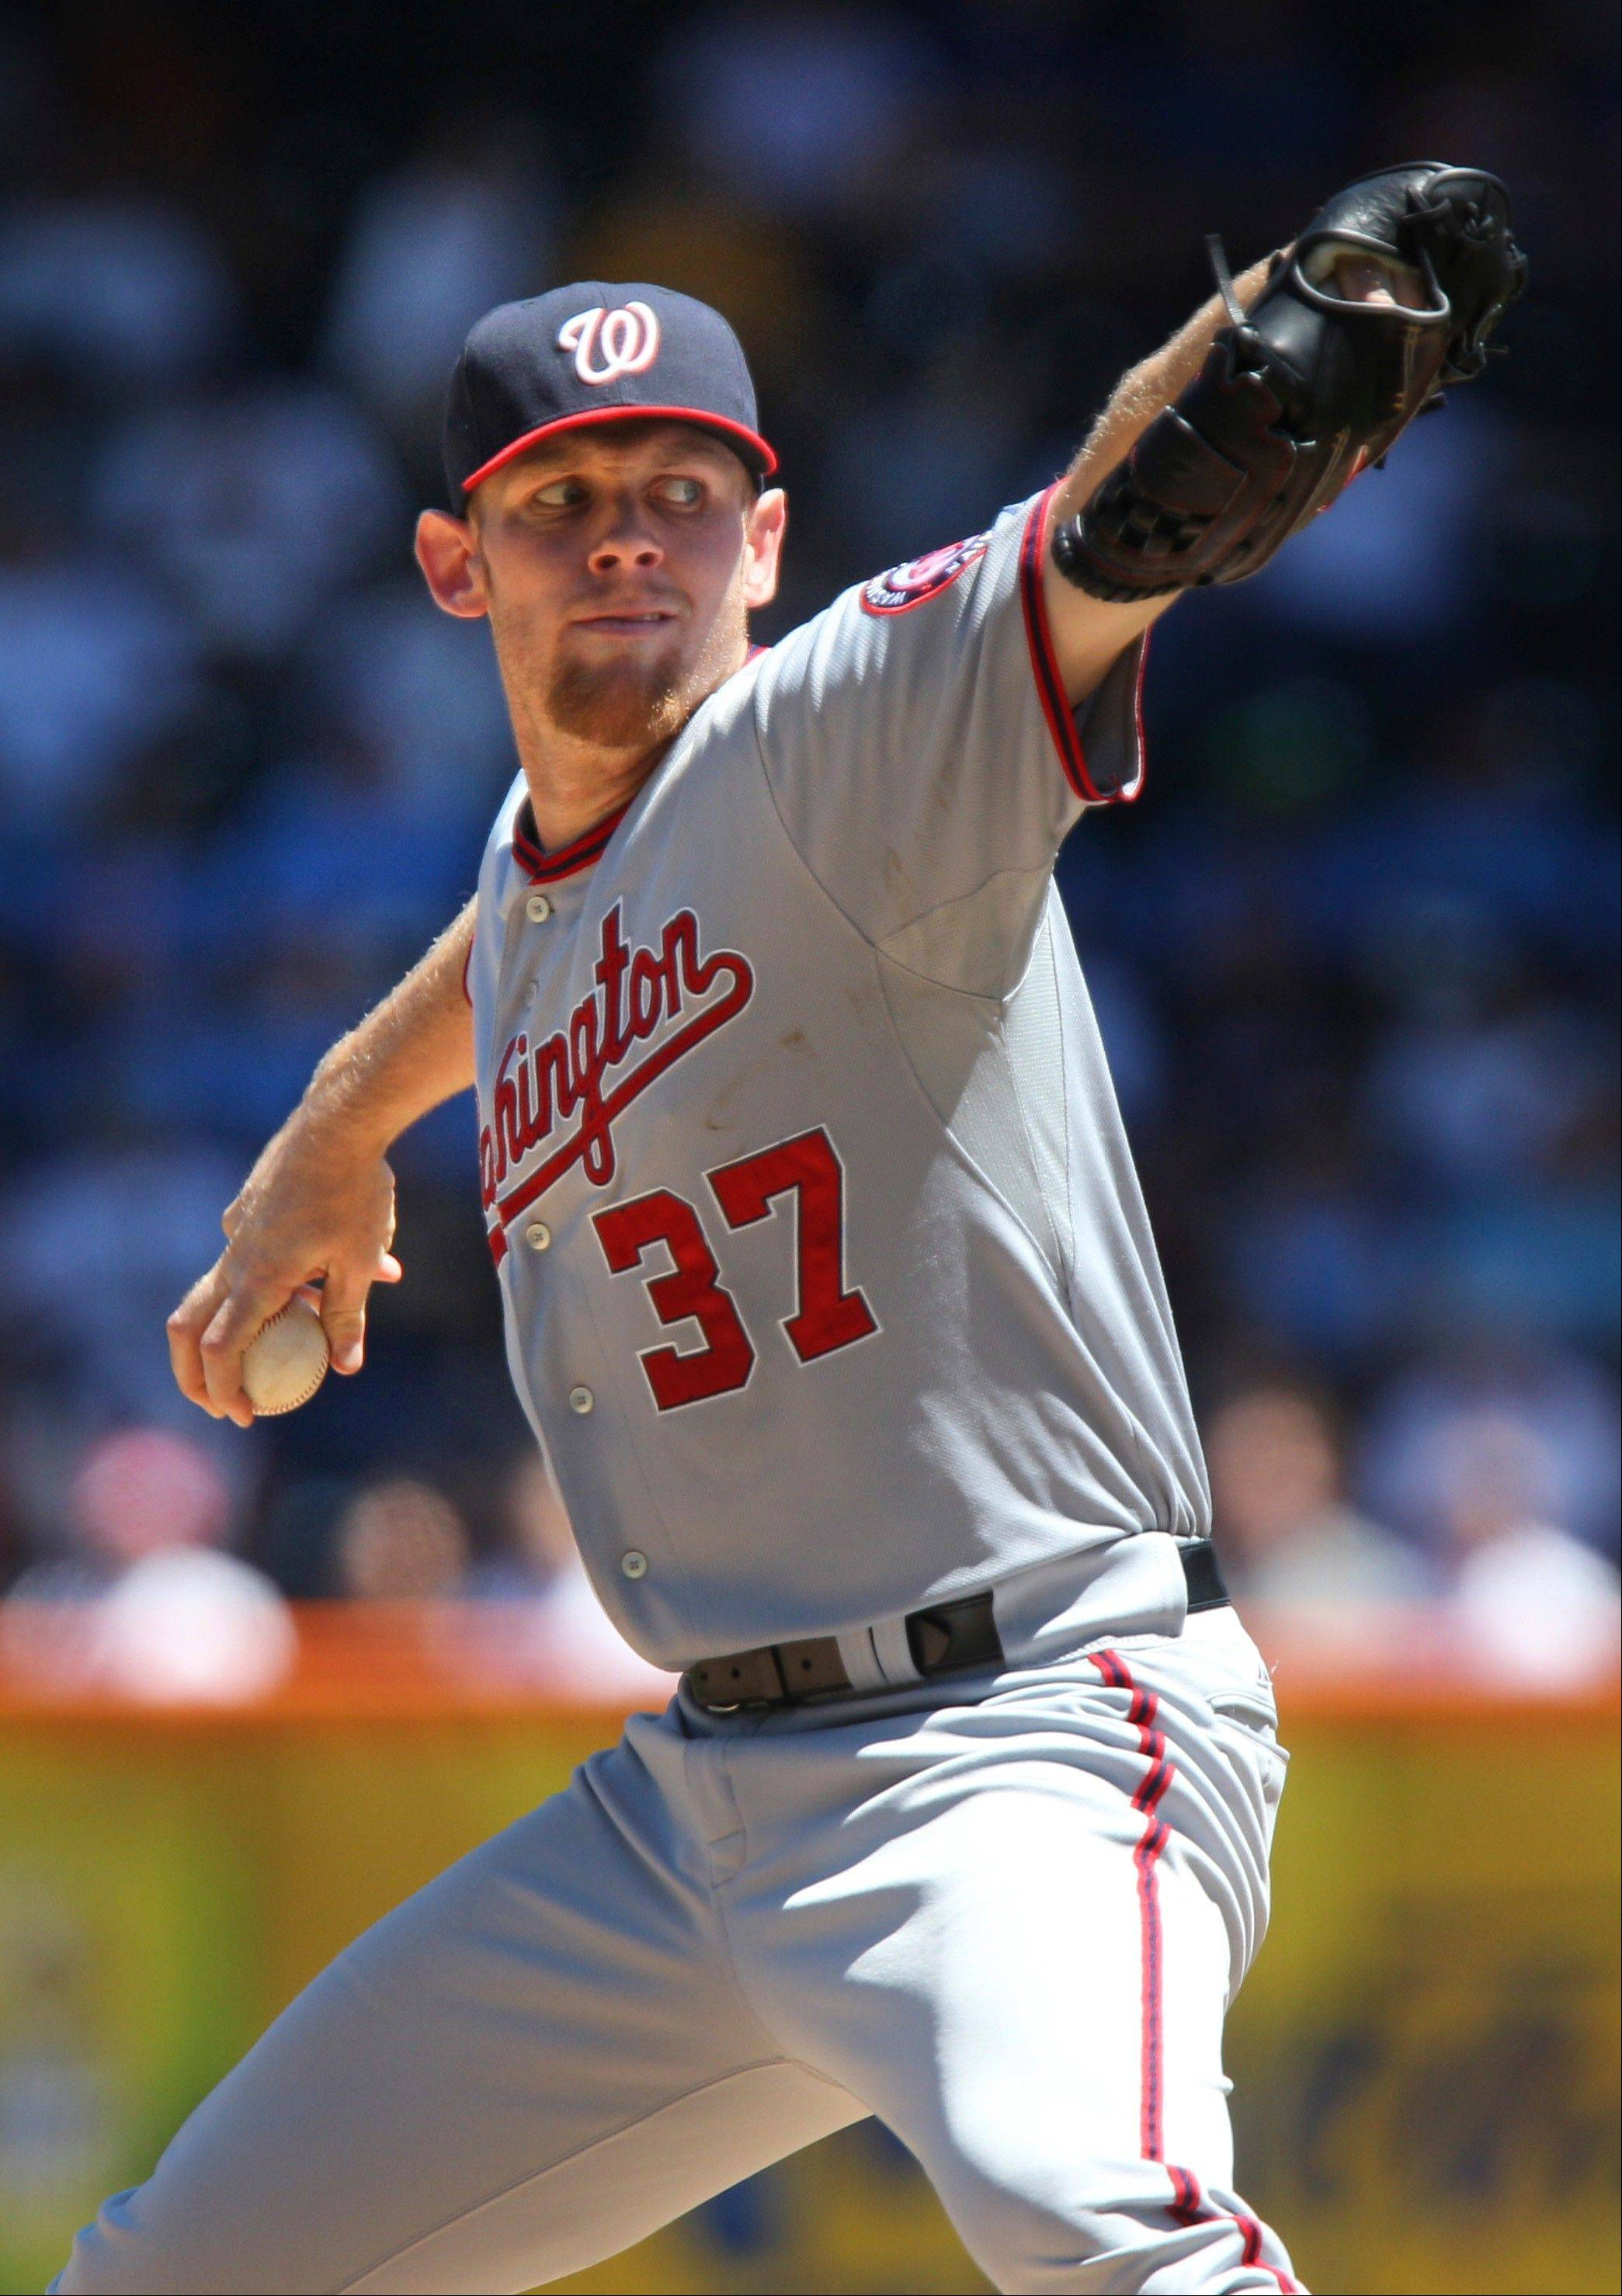 Washington Nationals starting pitcher Stephen Strasburg pitches Wednesday during the second inning against the New York Mets at Citi Field in New York.